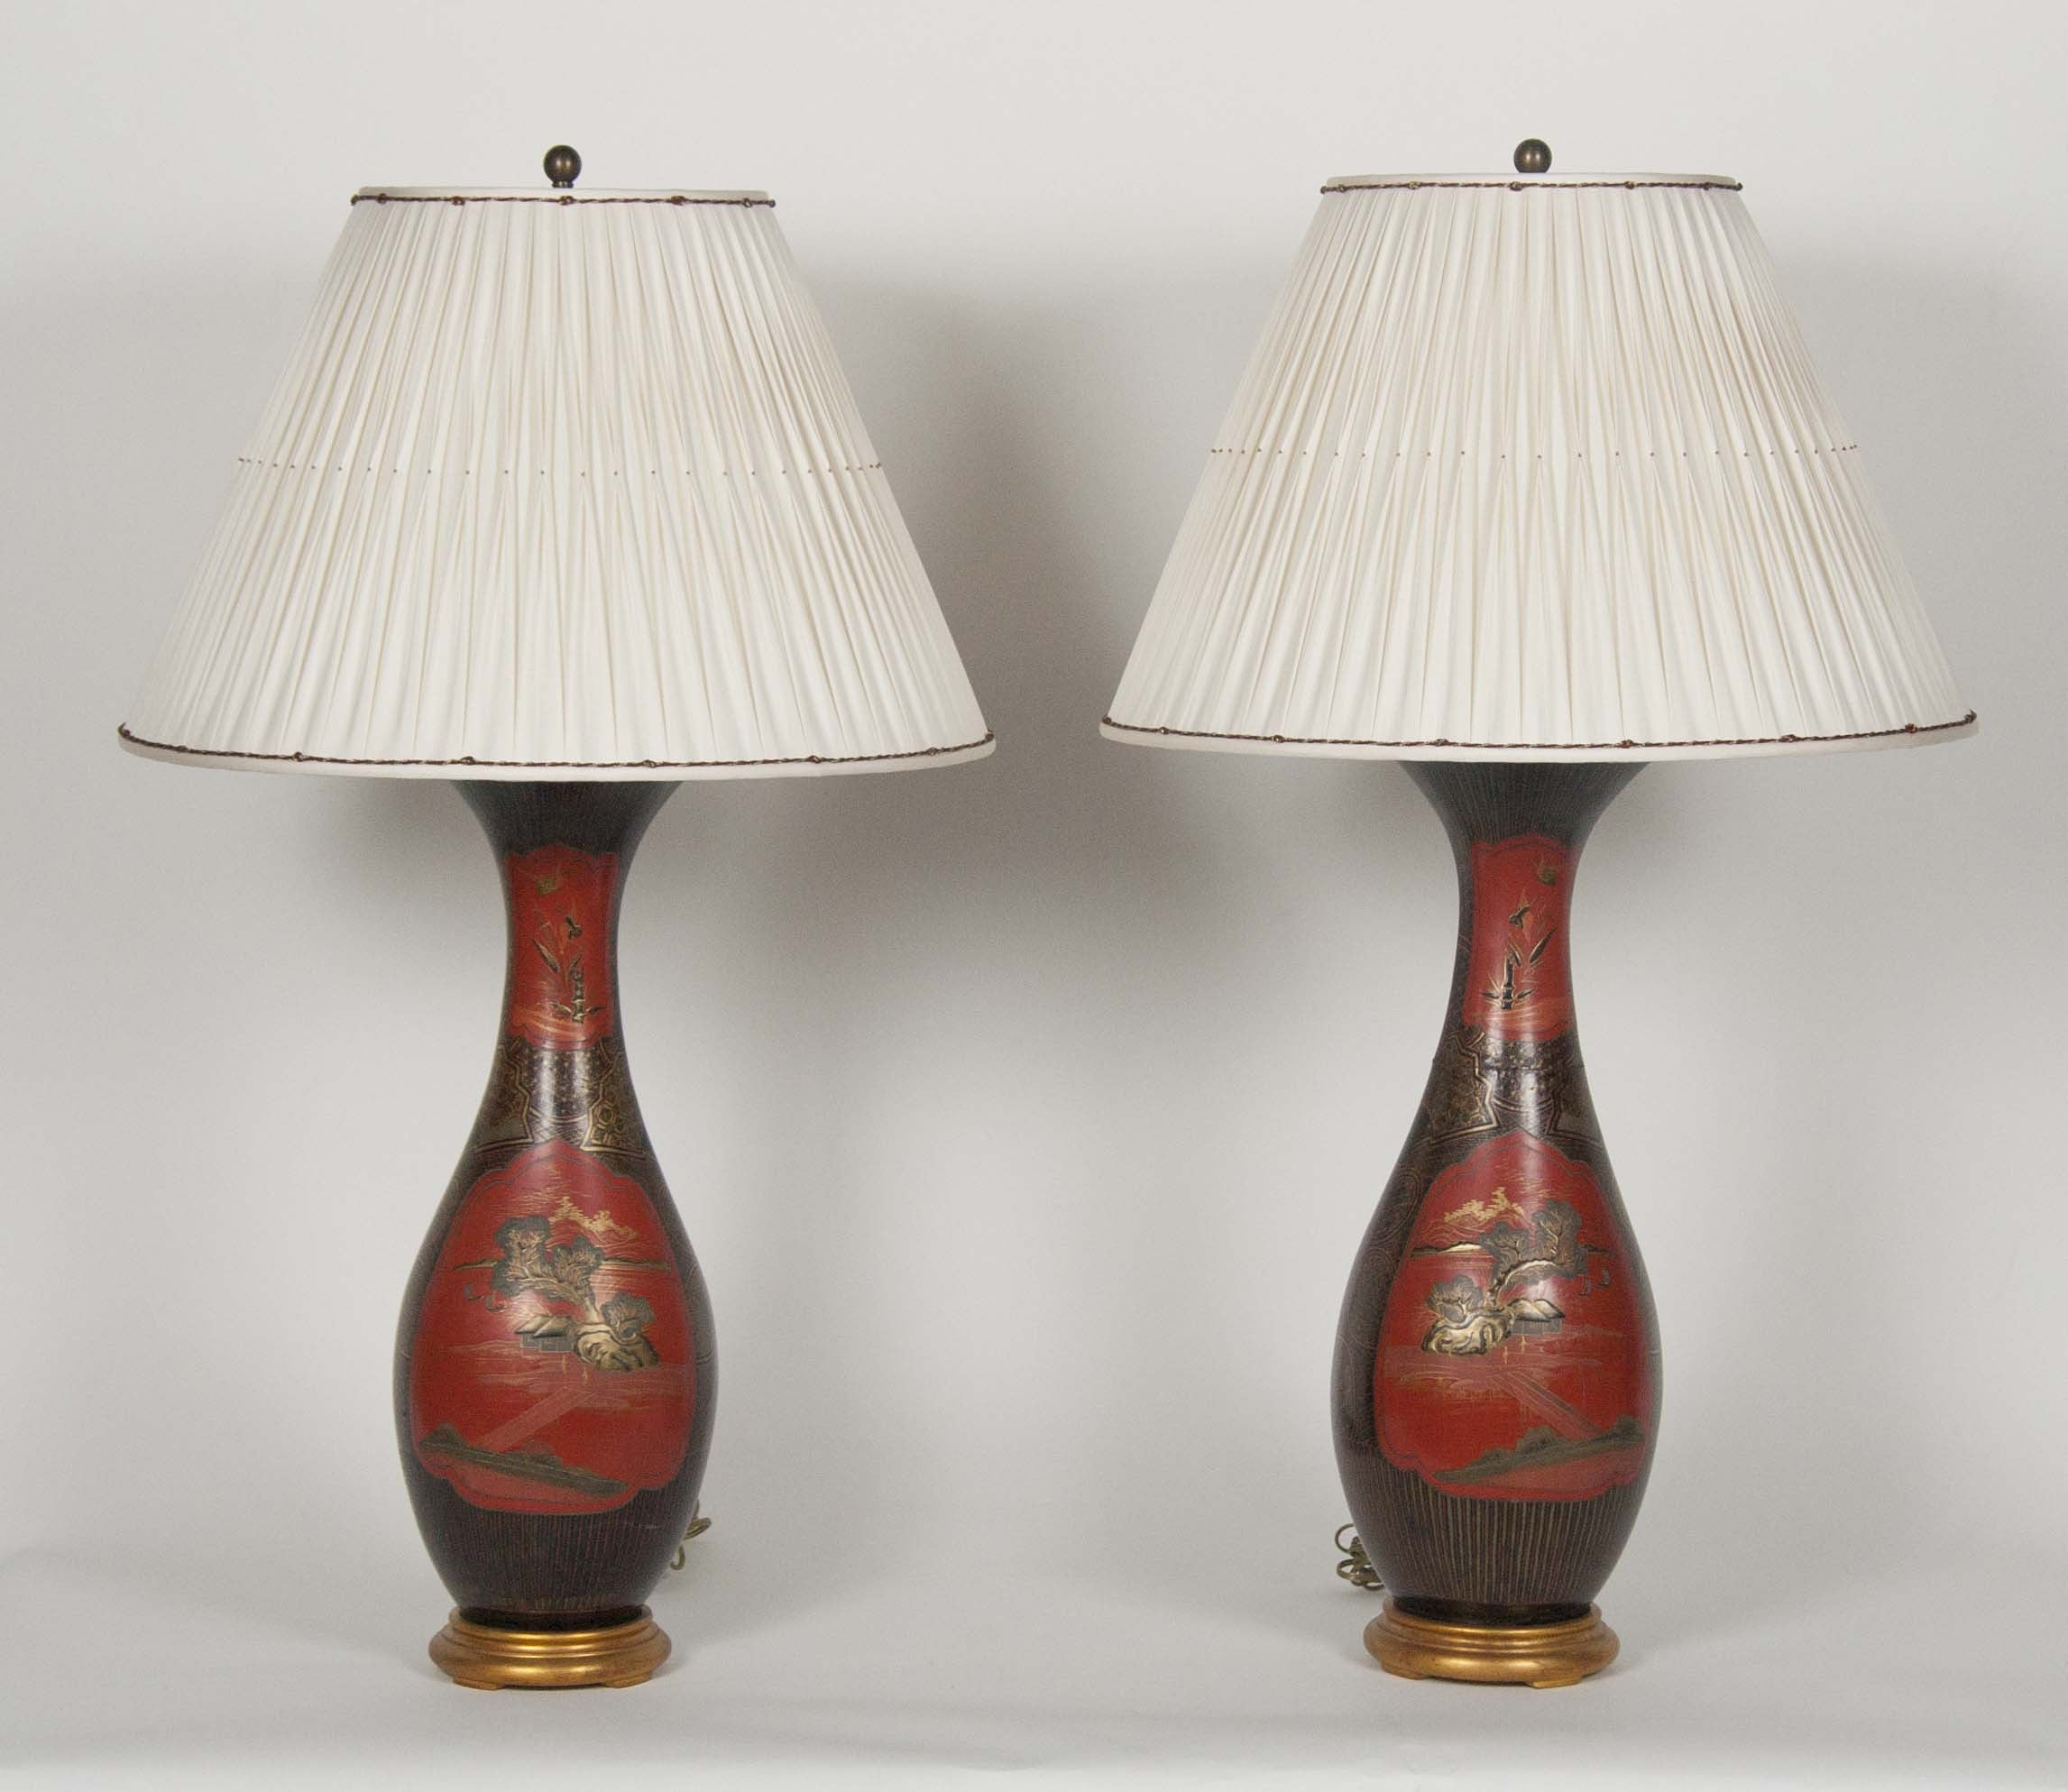 A Pair of large French Chinoisserie lamps